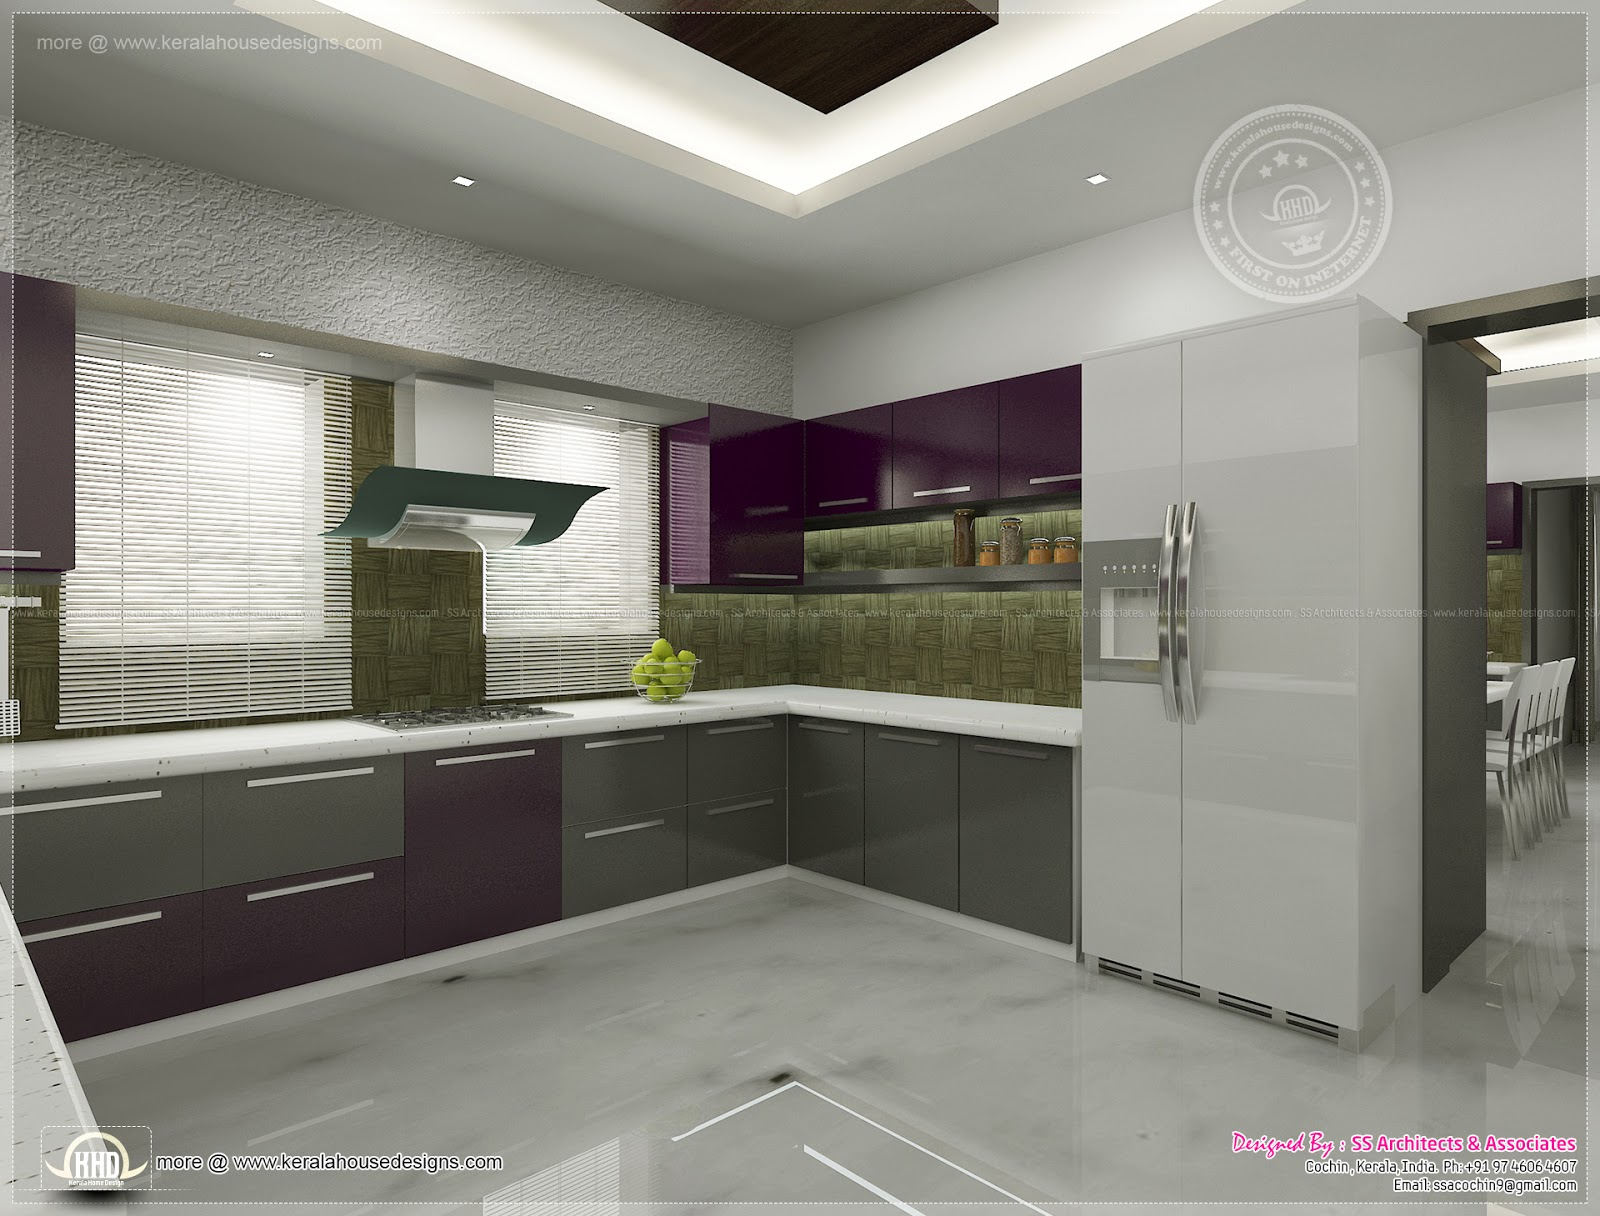 Kitchen interior views by ss architects cochin kerala for Kitchen interior design images